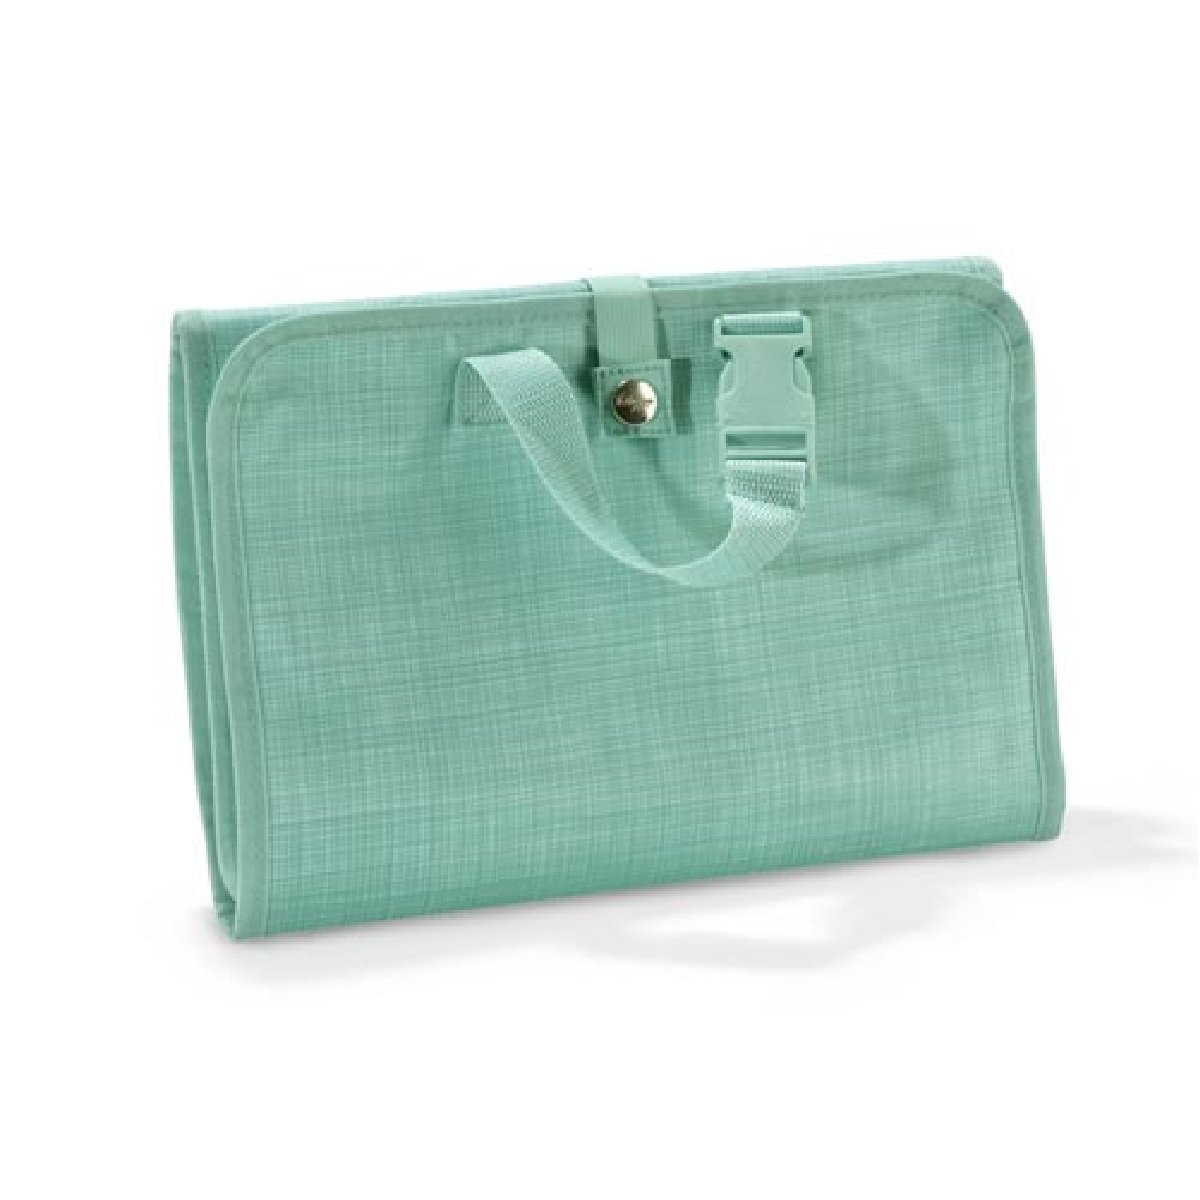 Thirty One Timeless Beauty Bag in Turquoise Cross Pop - No Monogram - 3849